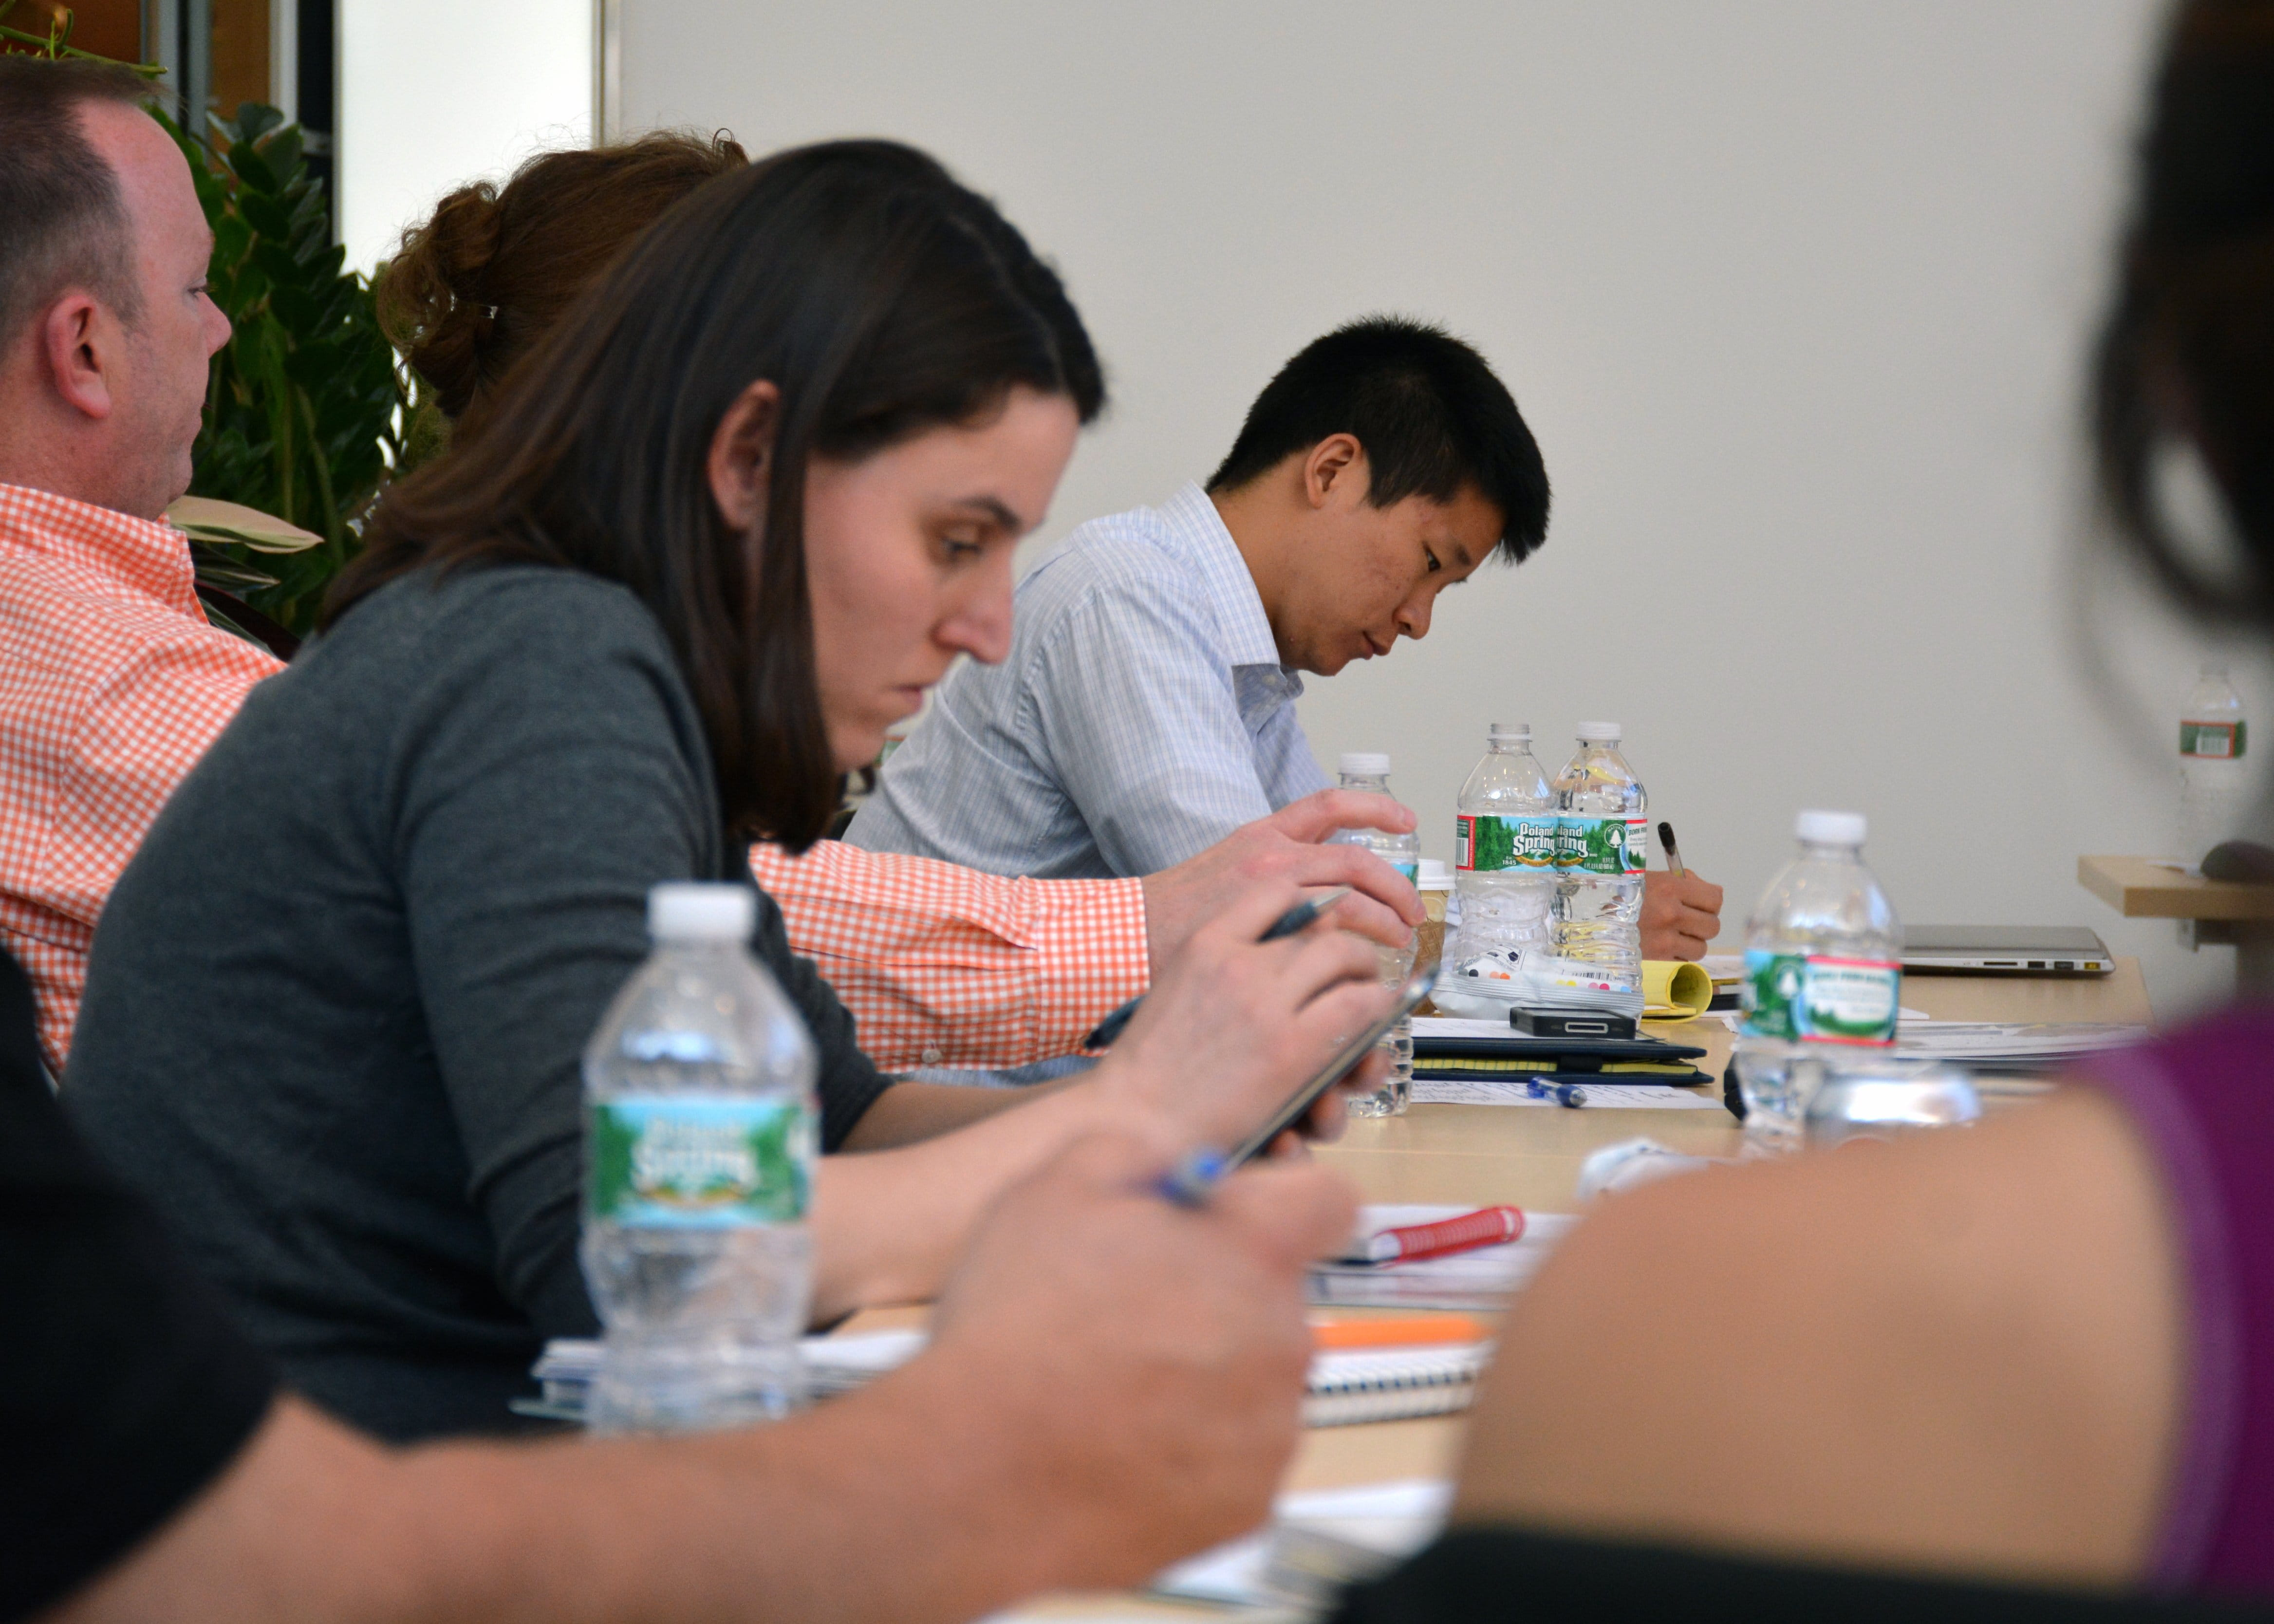 Training attendees sitting at table